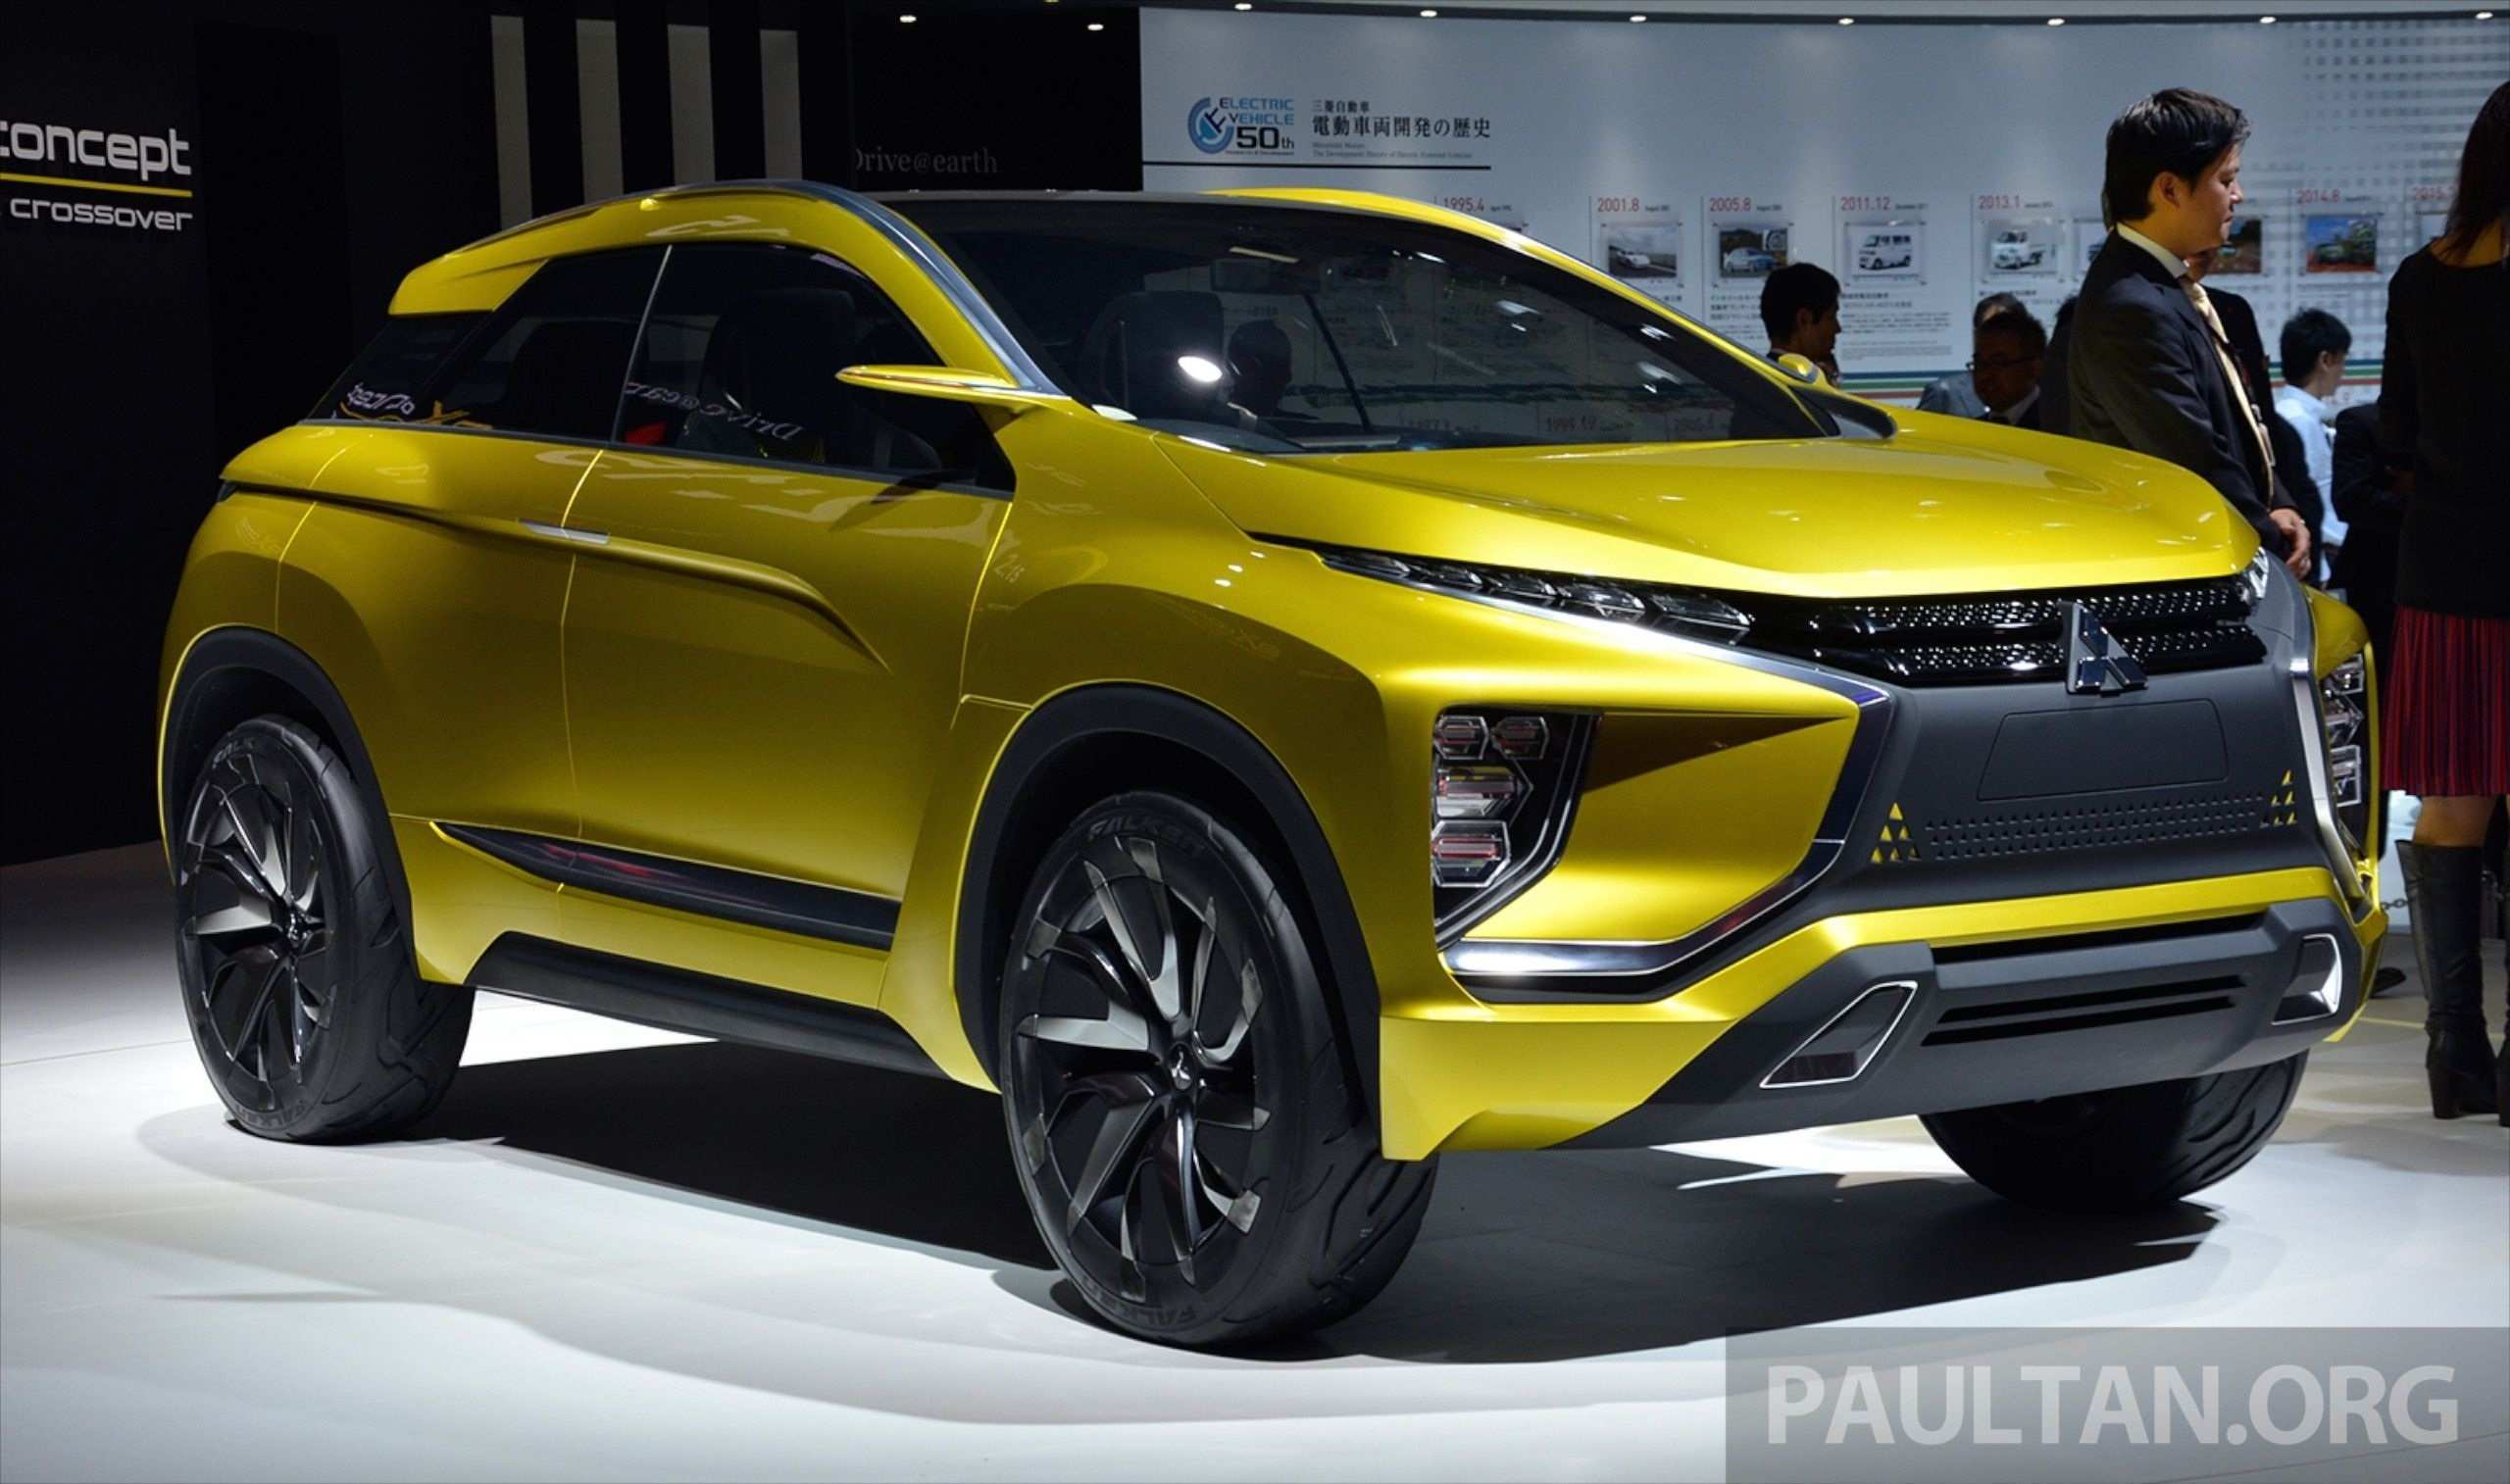 71 The Best 2020 Mitsubishi Pajero Redesign And Concept